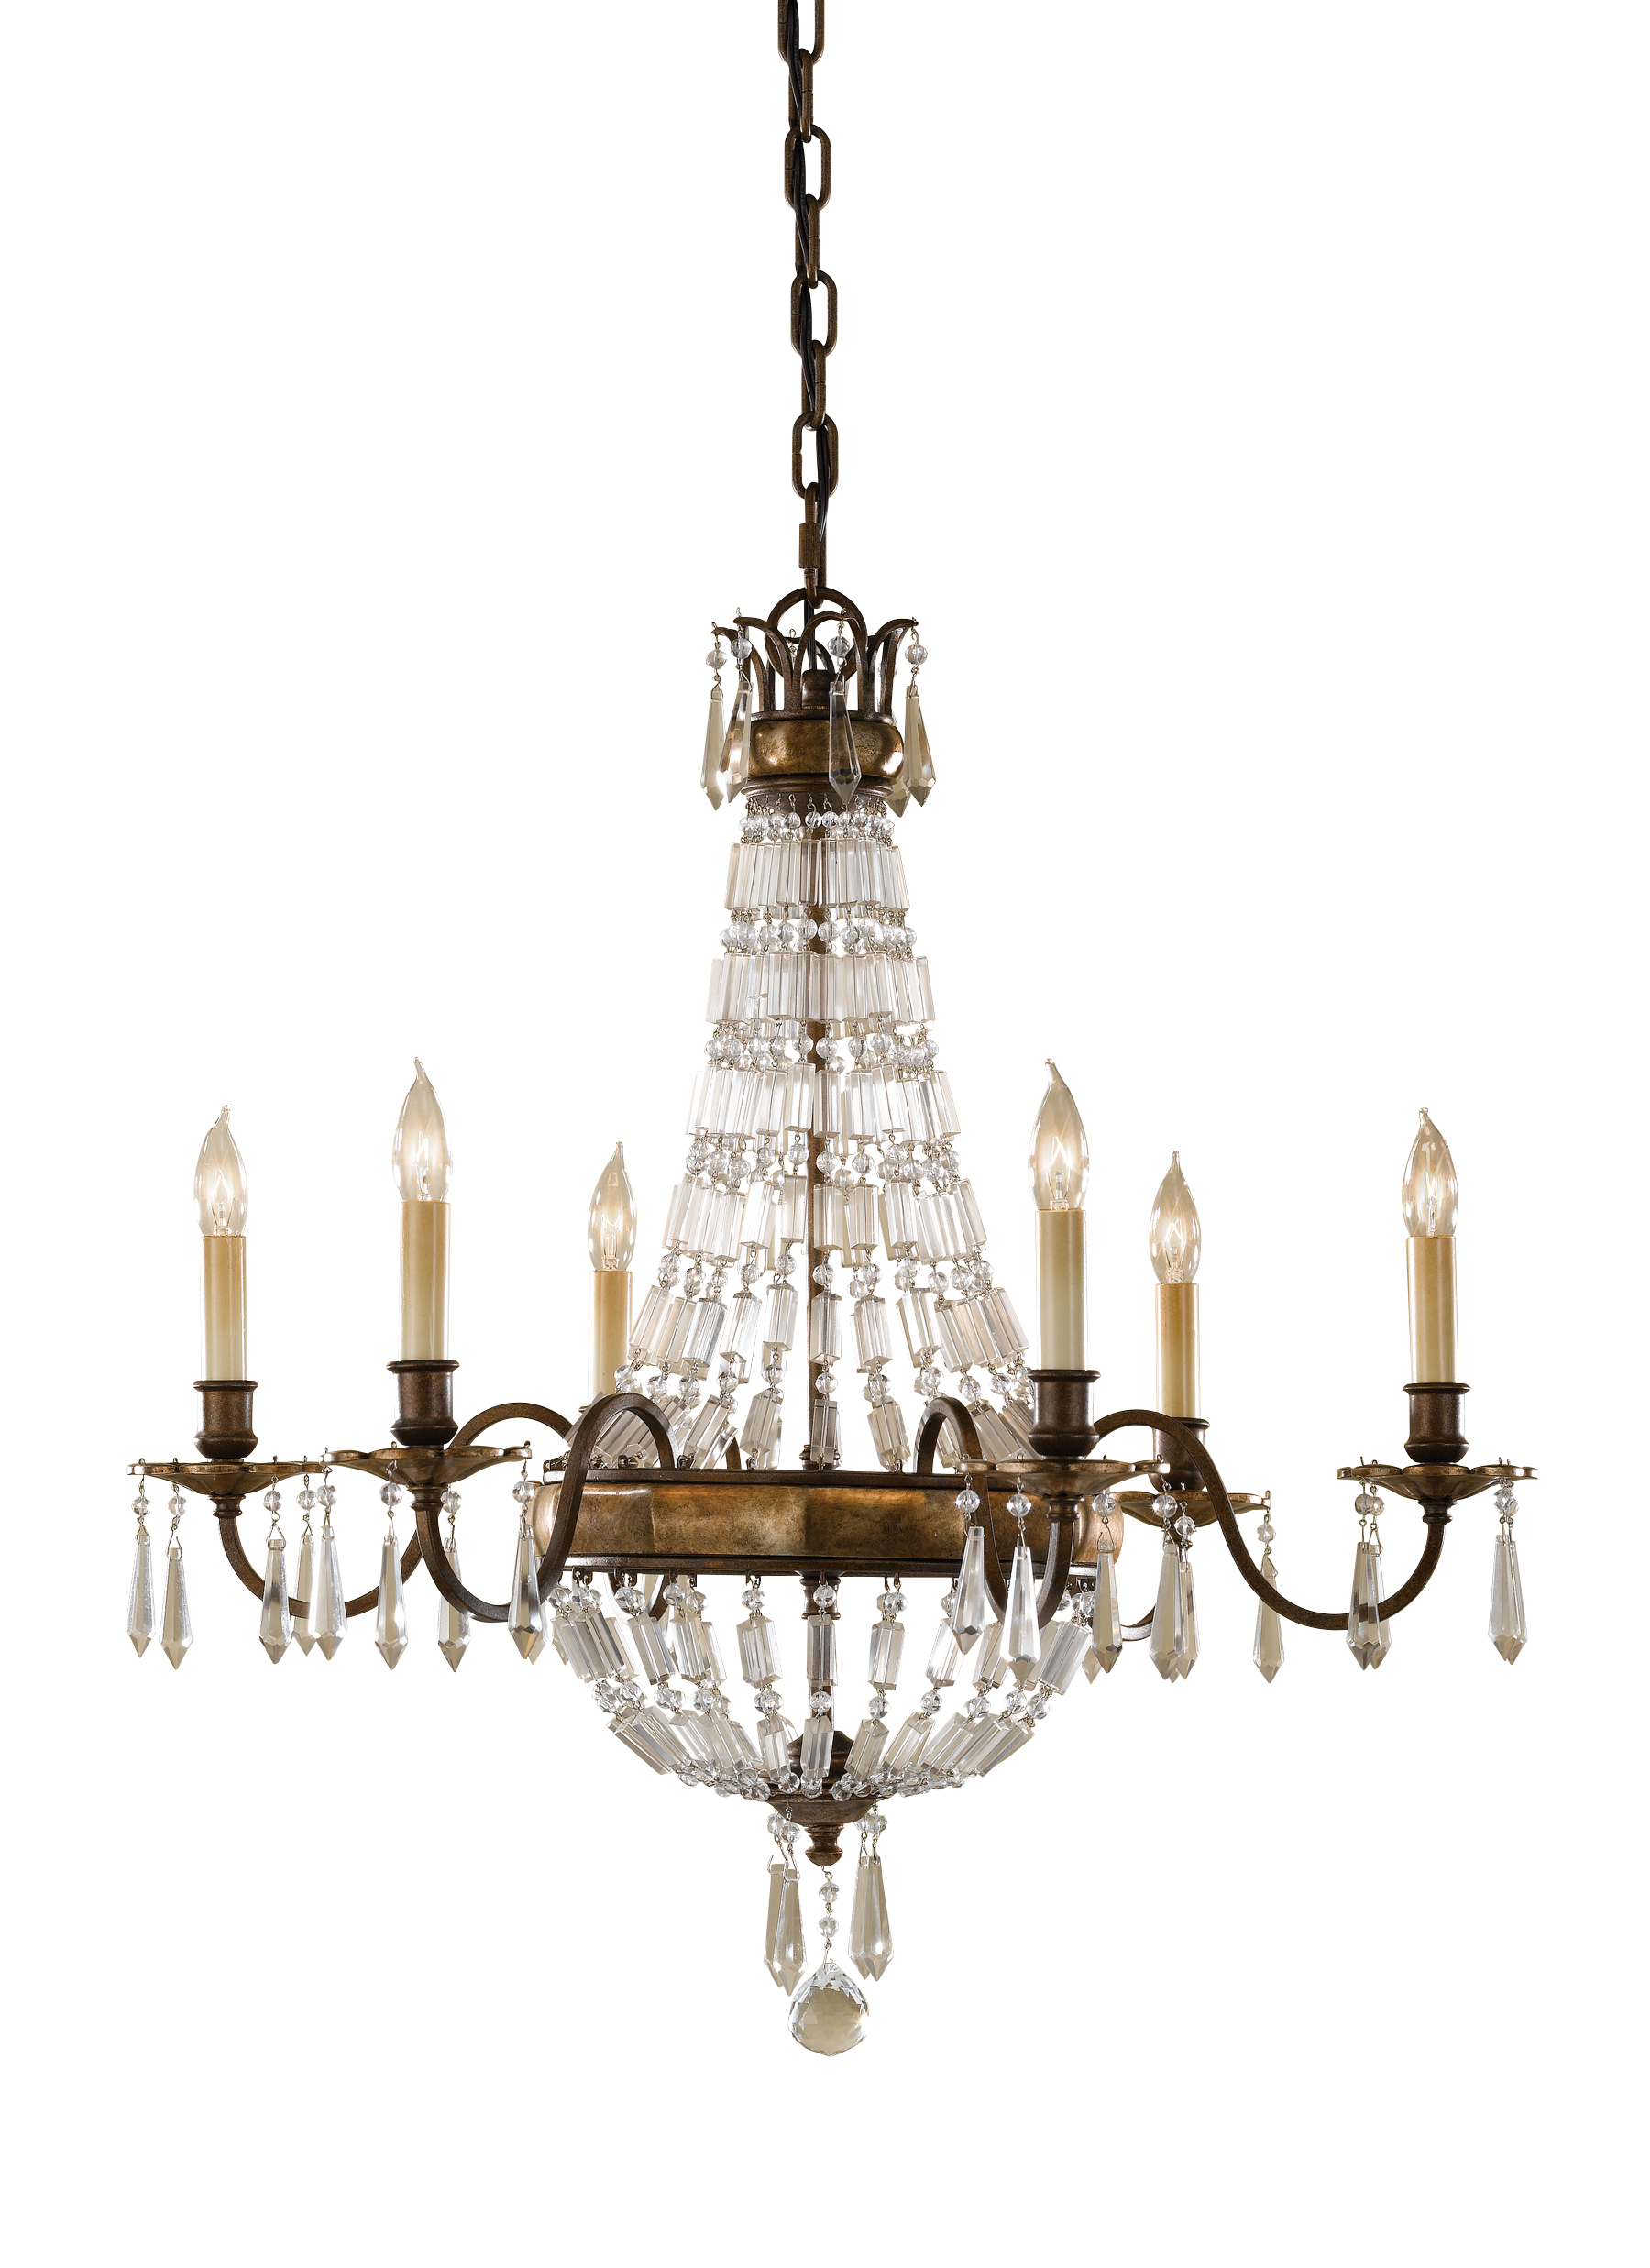 F24616obzbrb6 light single tier chandelieroxidized bronze loading zoom mozeypictures Image collections